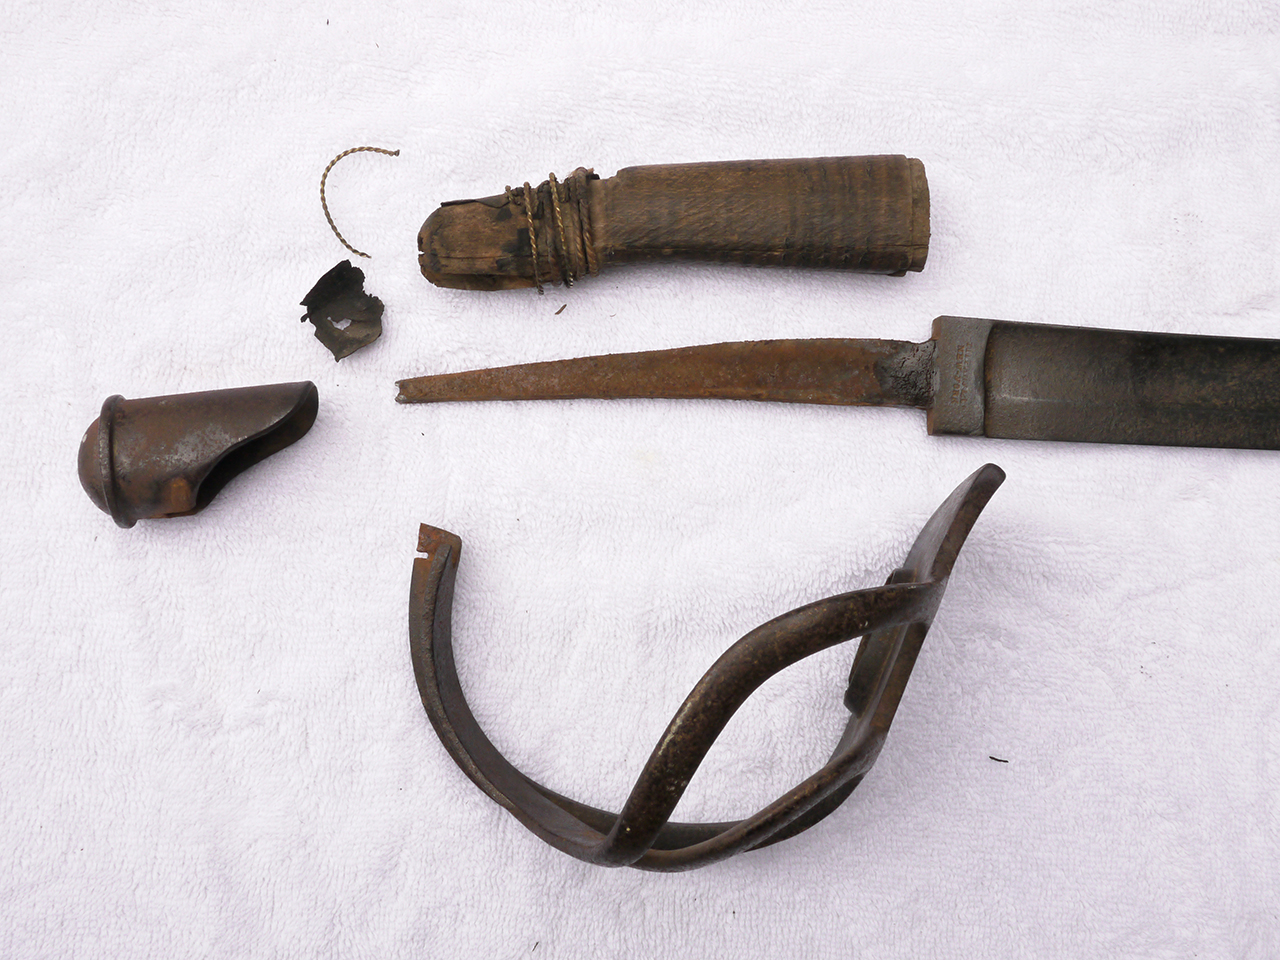 The disassembled parts of the hilt. Everything is dirty but in good shape otherwise.